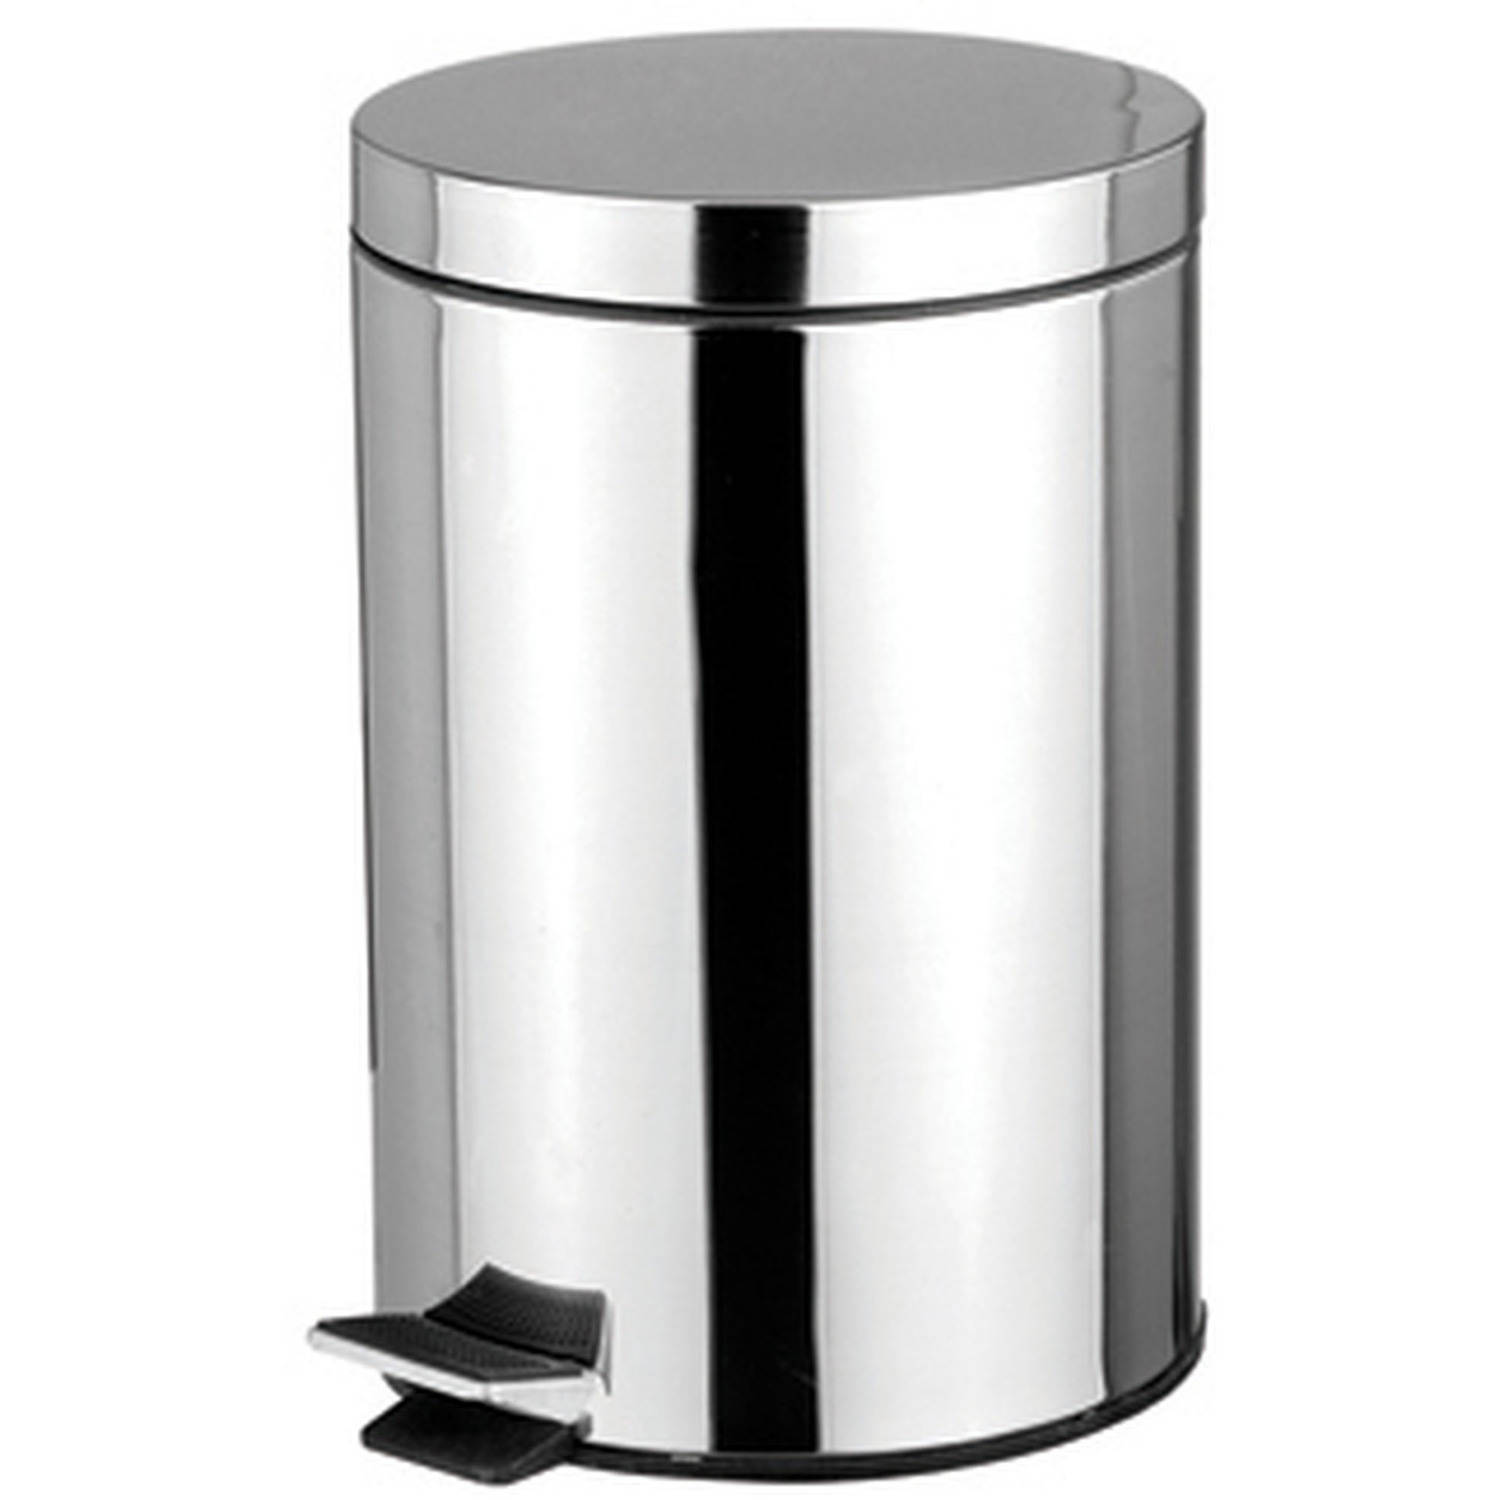 Home Basics 5 L Stainless Steel Waste Basket